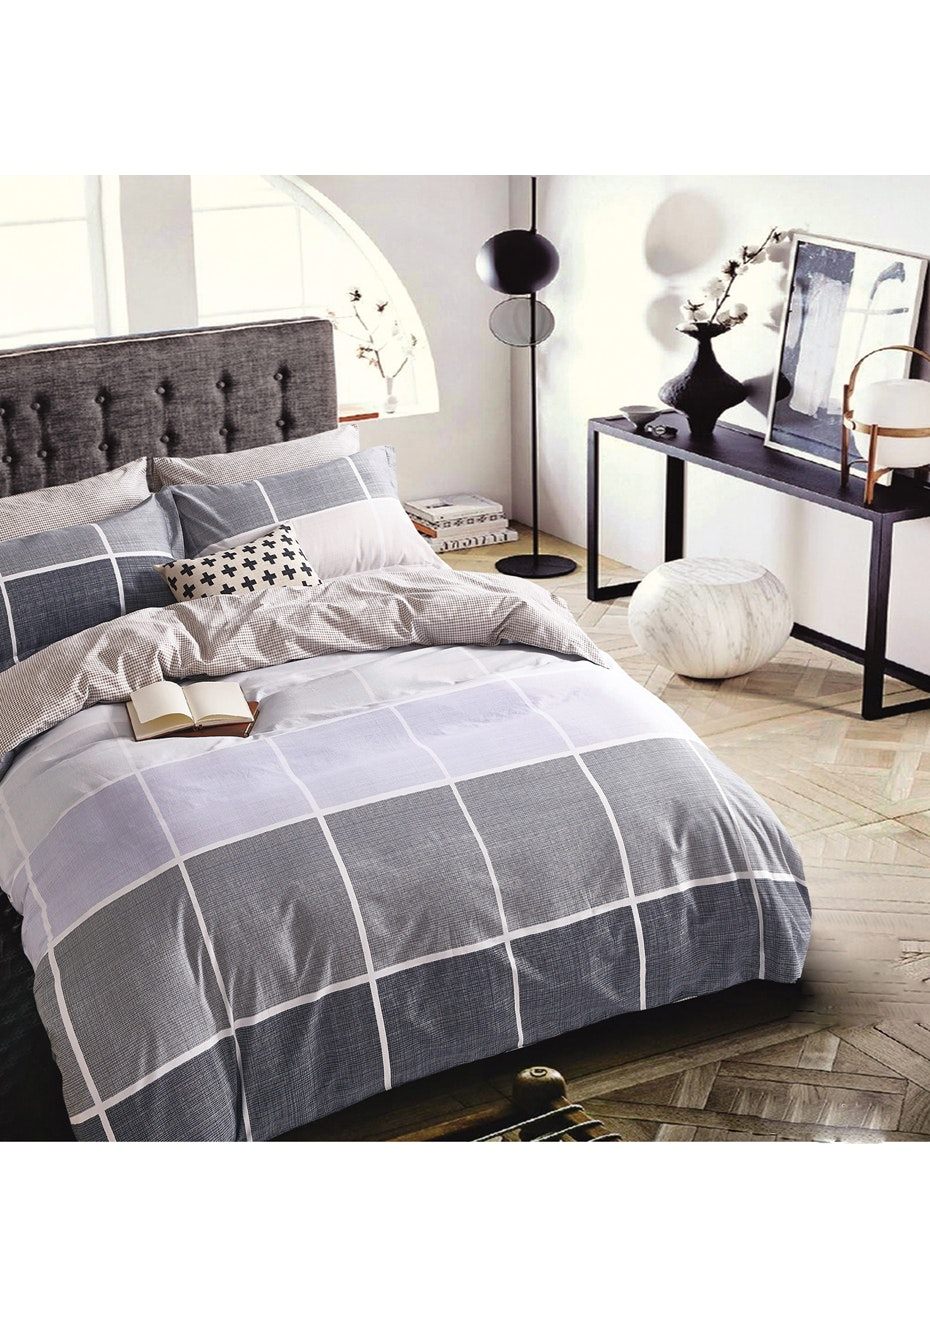 Catalina Quilt Cover Set - Reversible Design - 100% Cotton Single Bed